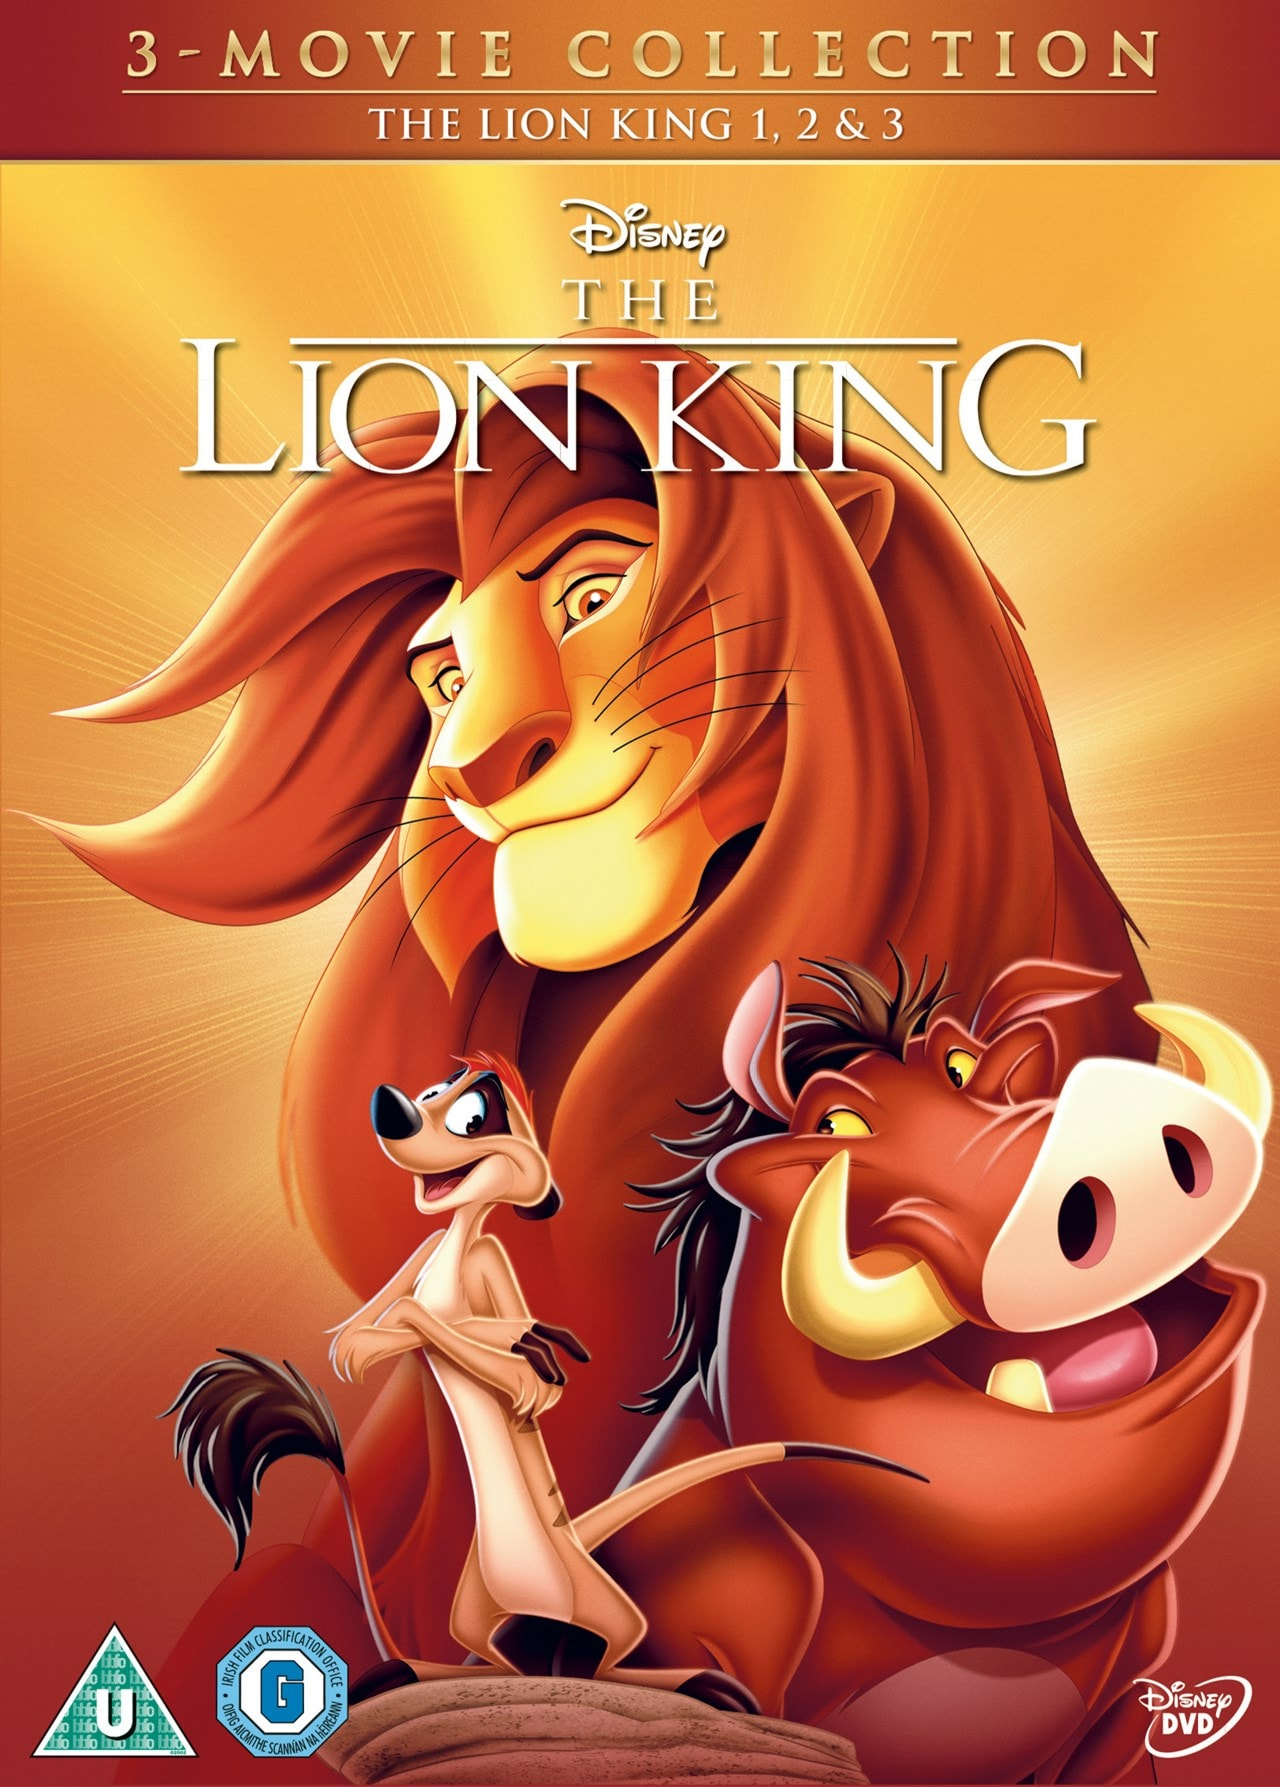 The Lion King Trilogy - 1